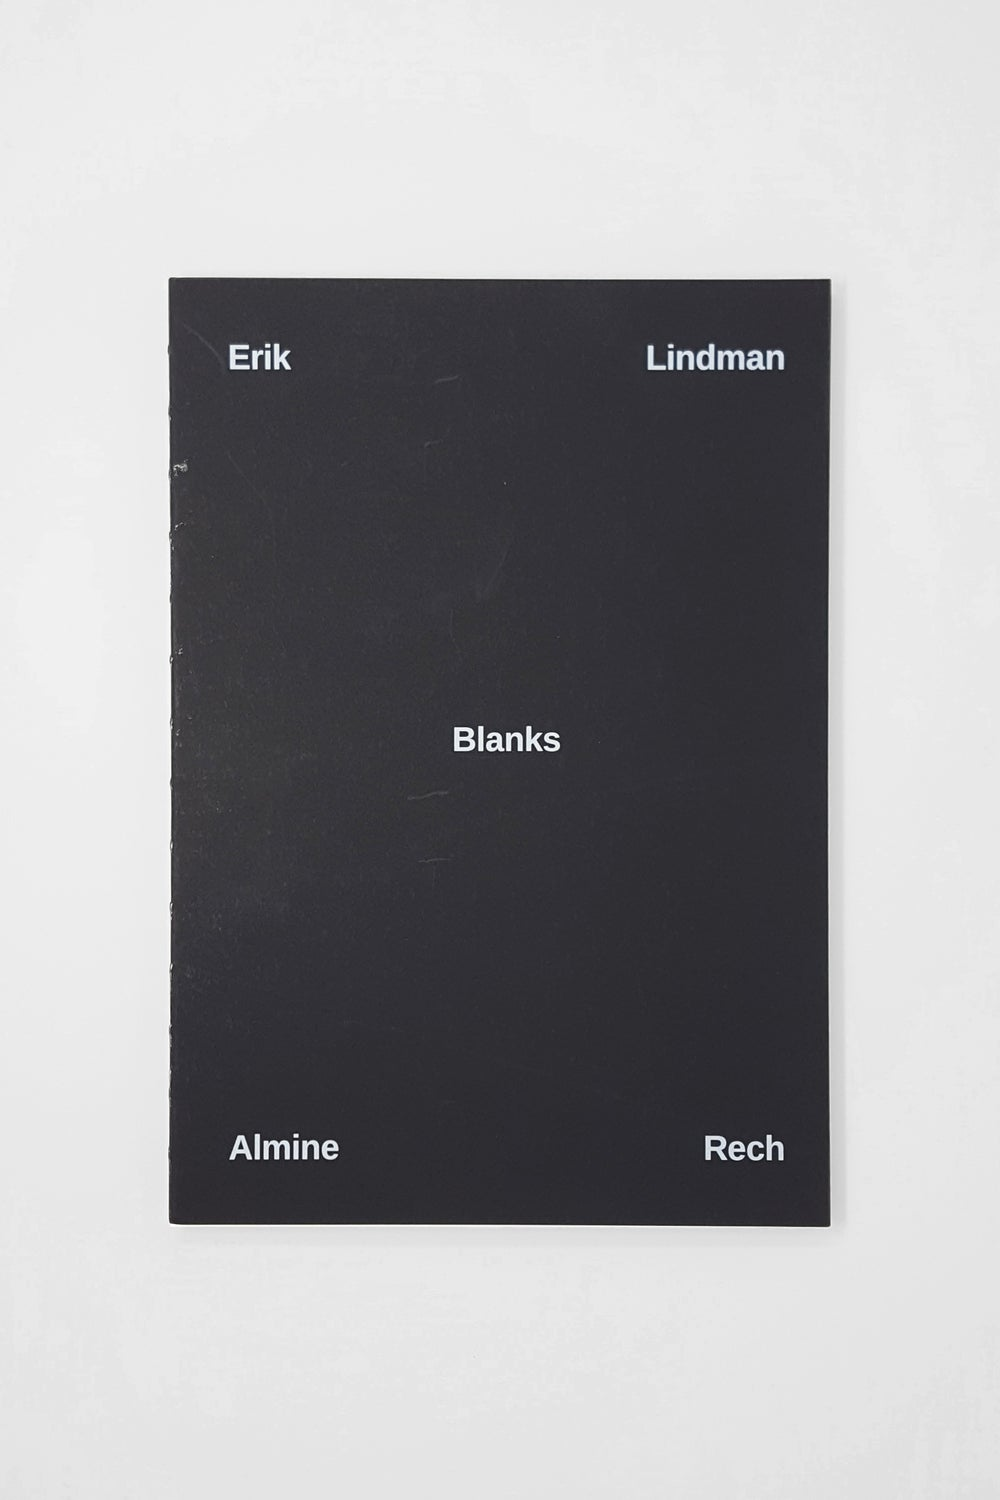 Image of Erik Lindman - Blanks